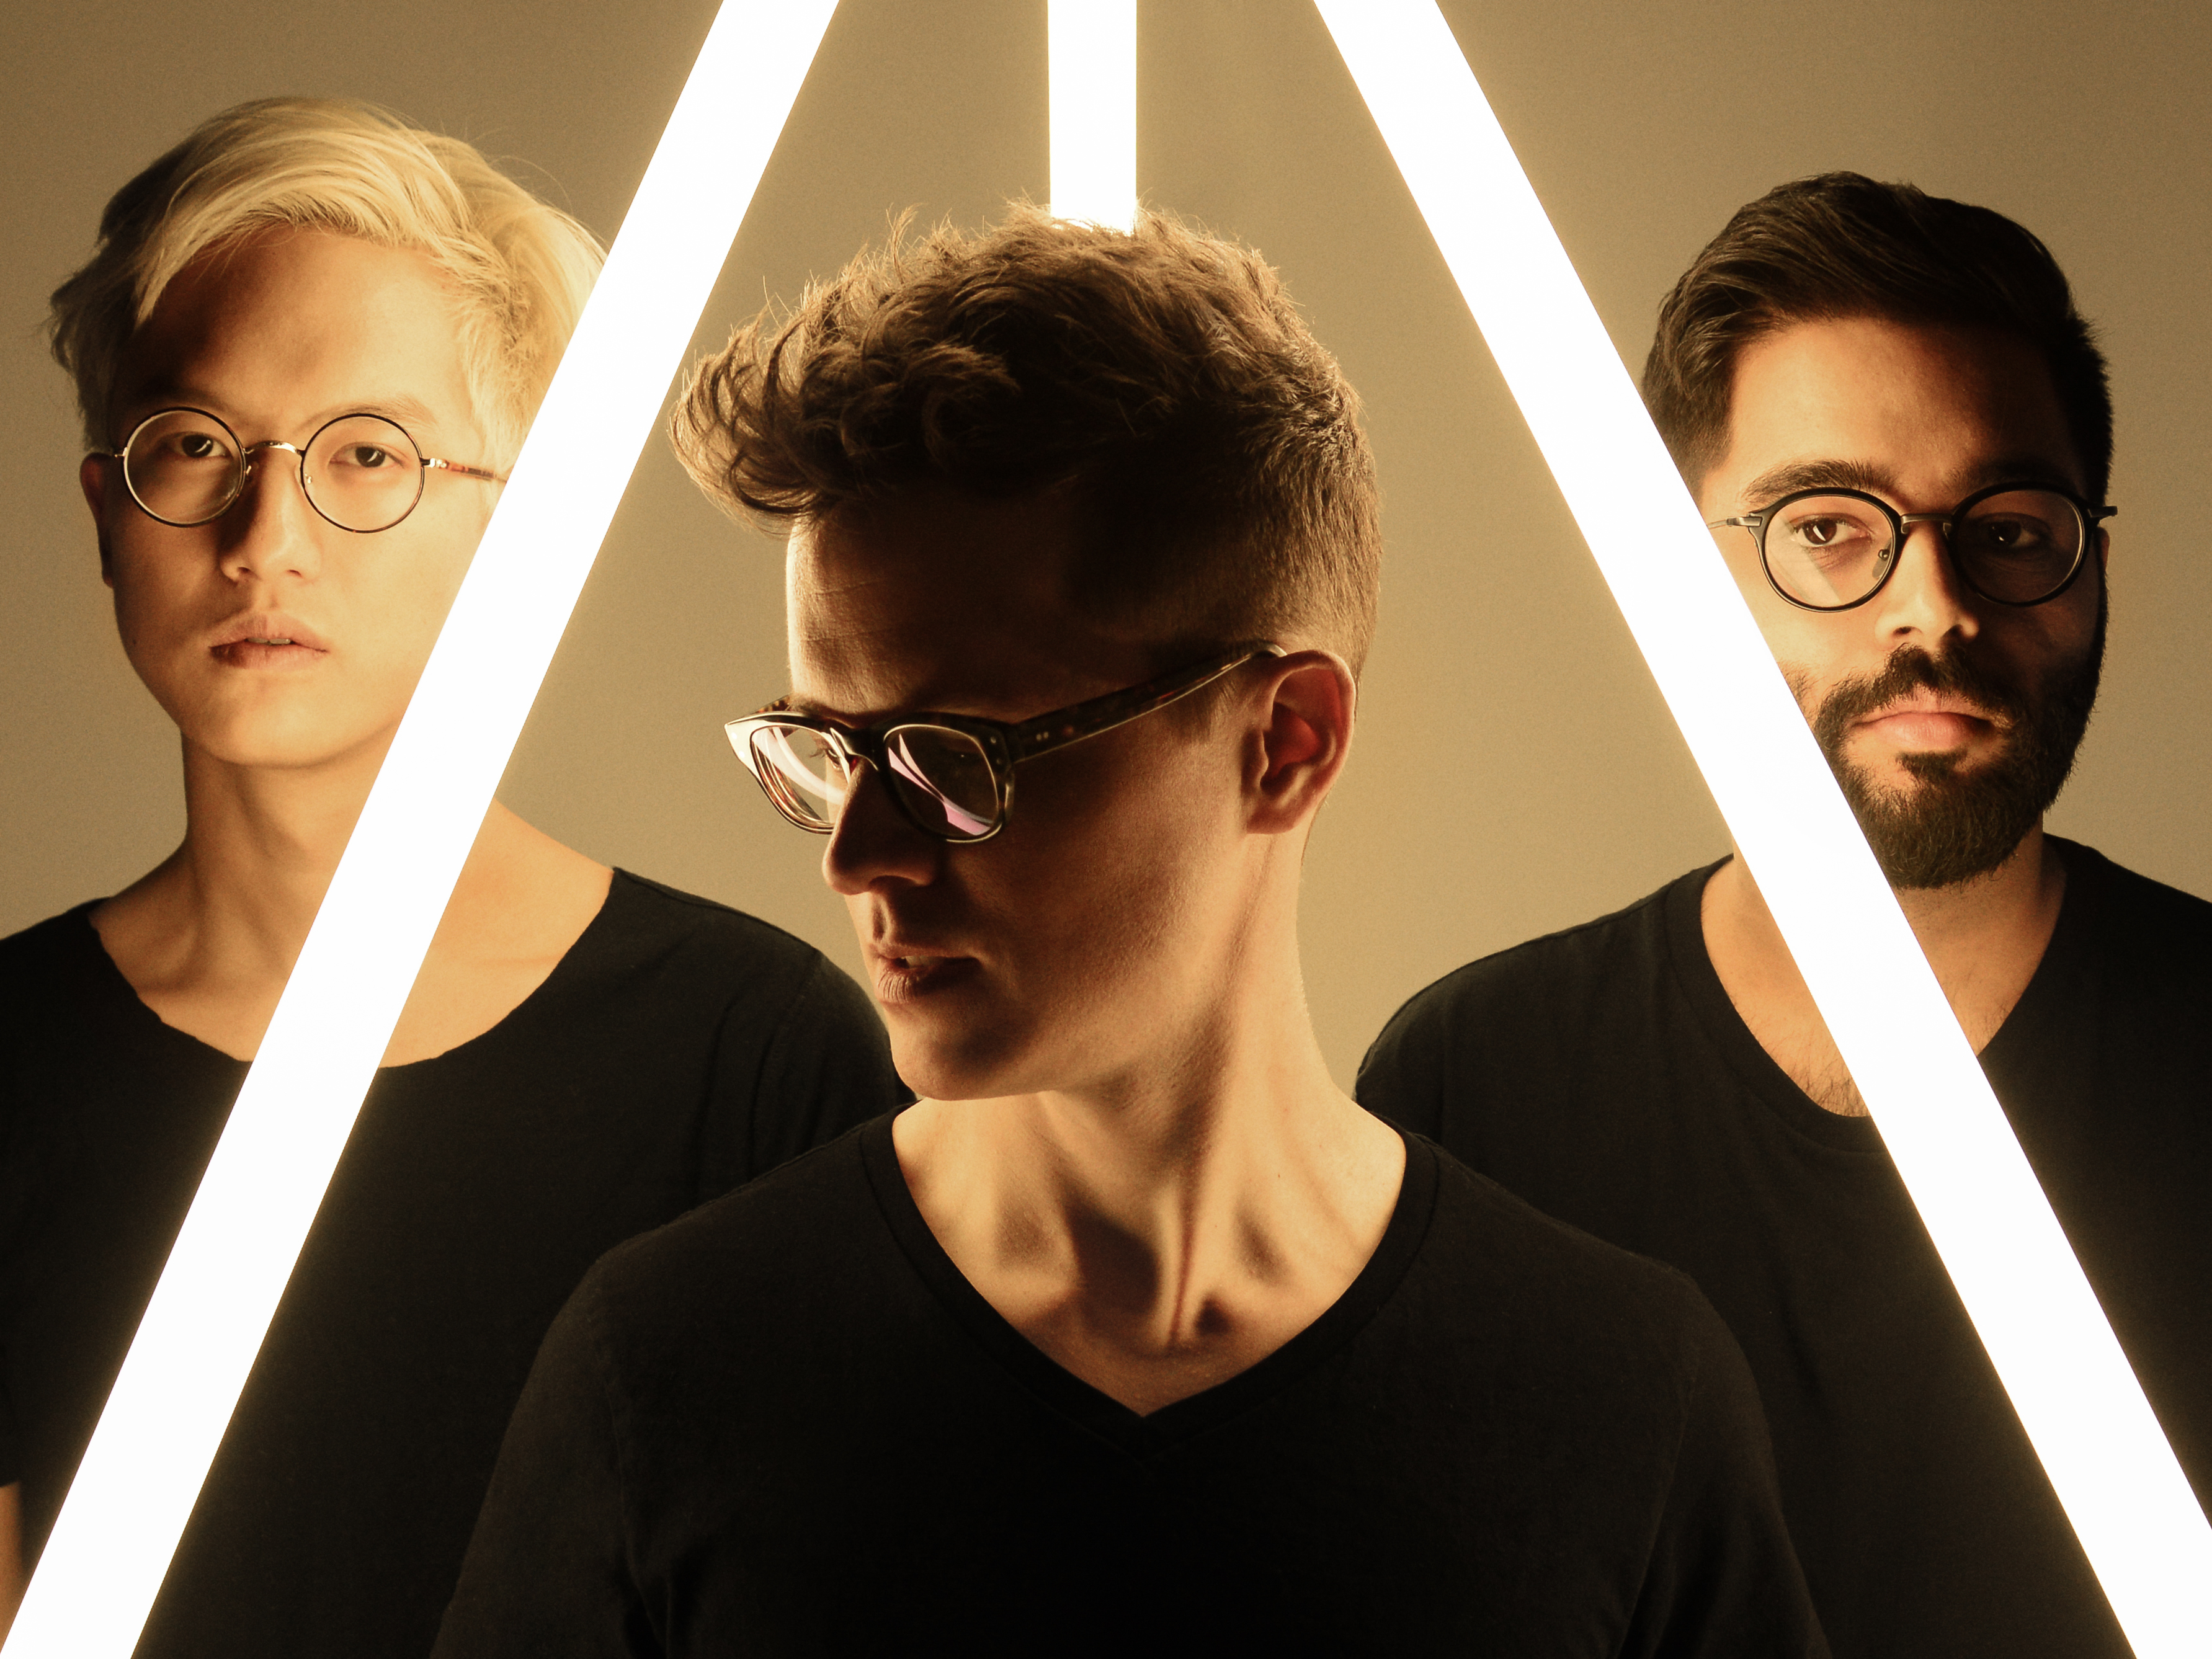 Son Lux's Bones is out June 23. (Courtesy of the artist)